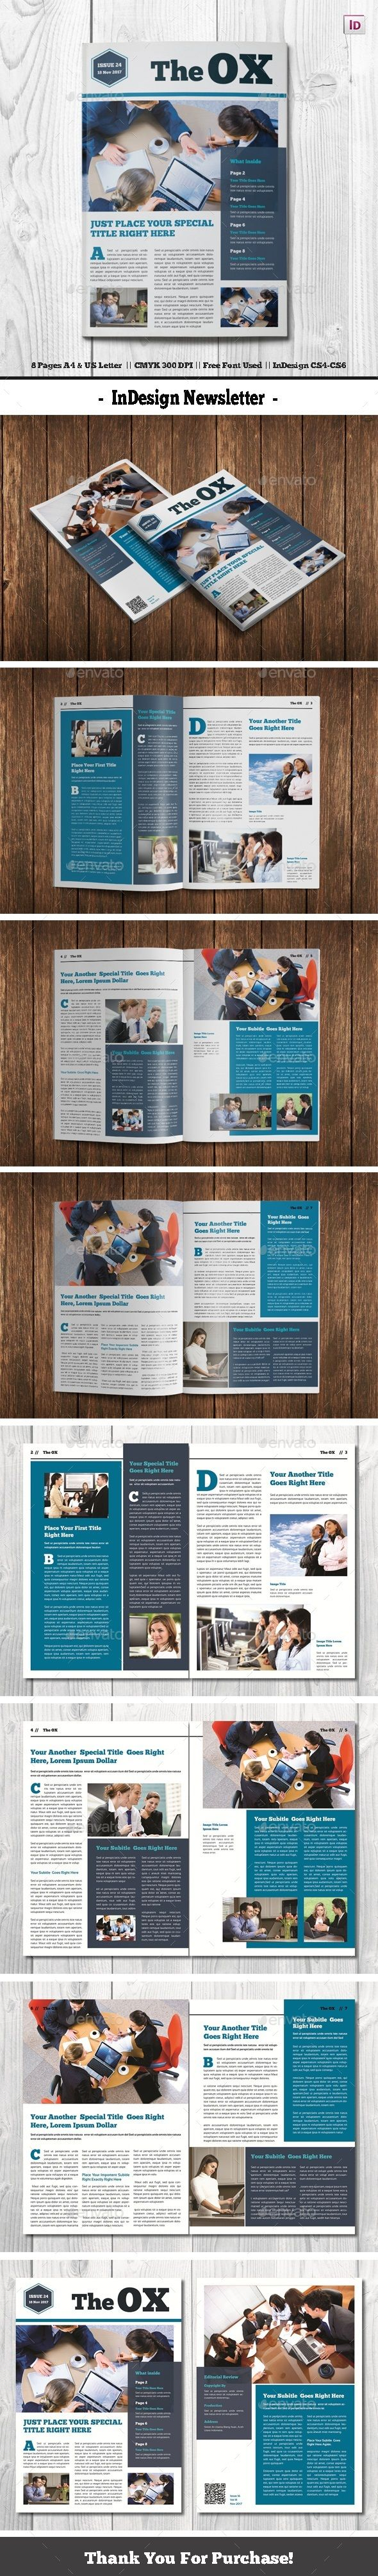 InDesign Newsletter Template InDesign INDD - 8 Pages A4 & US Letter ...